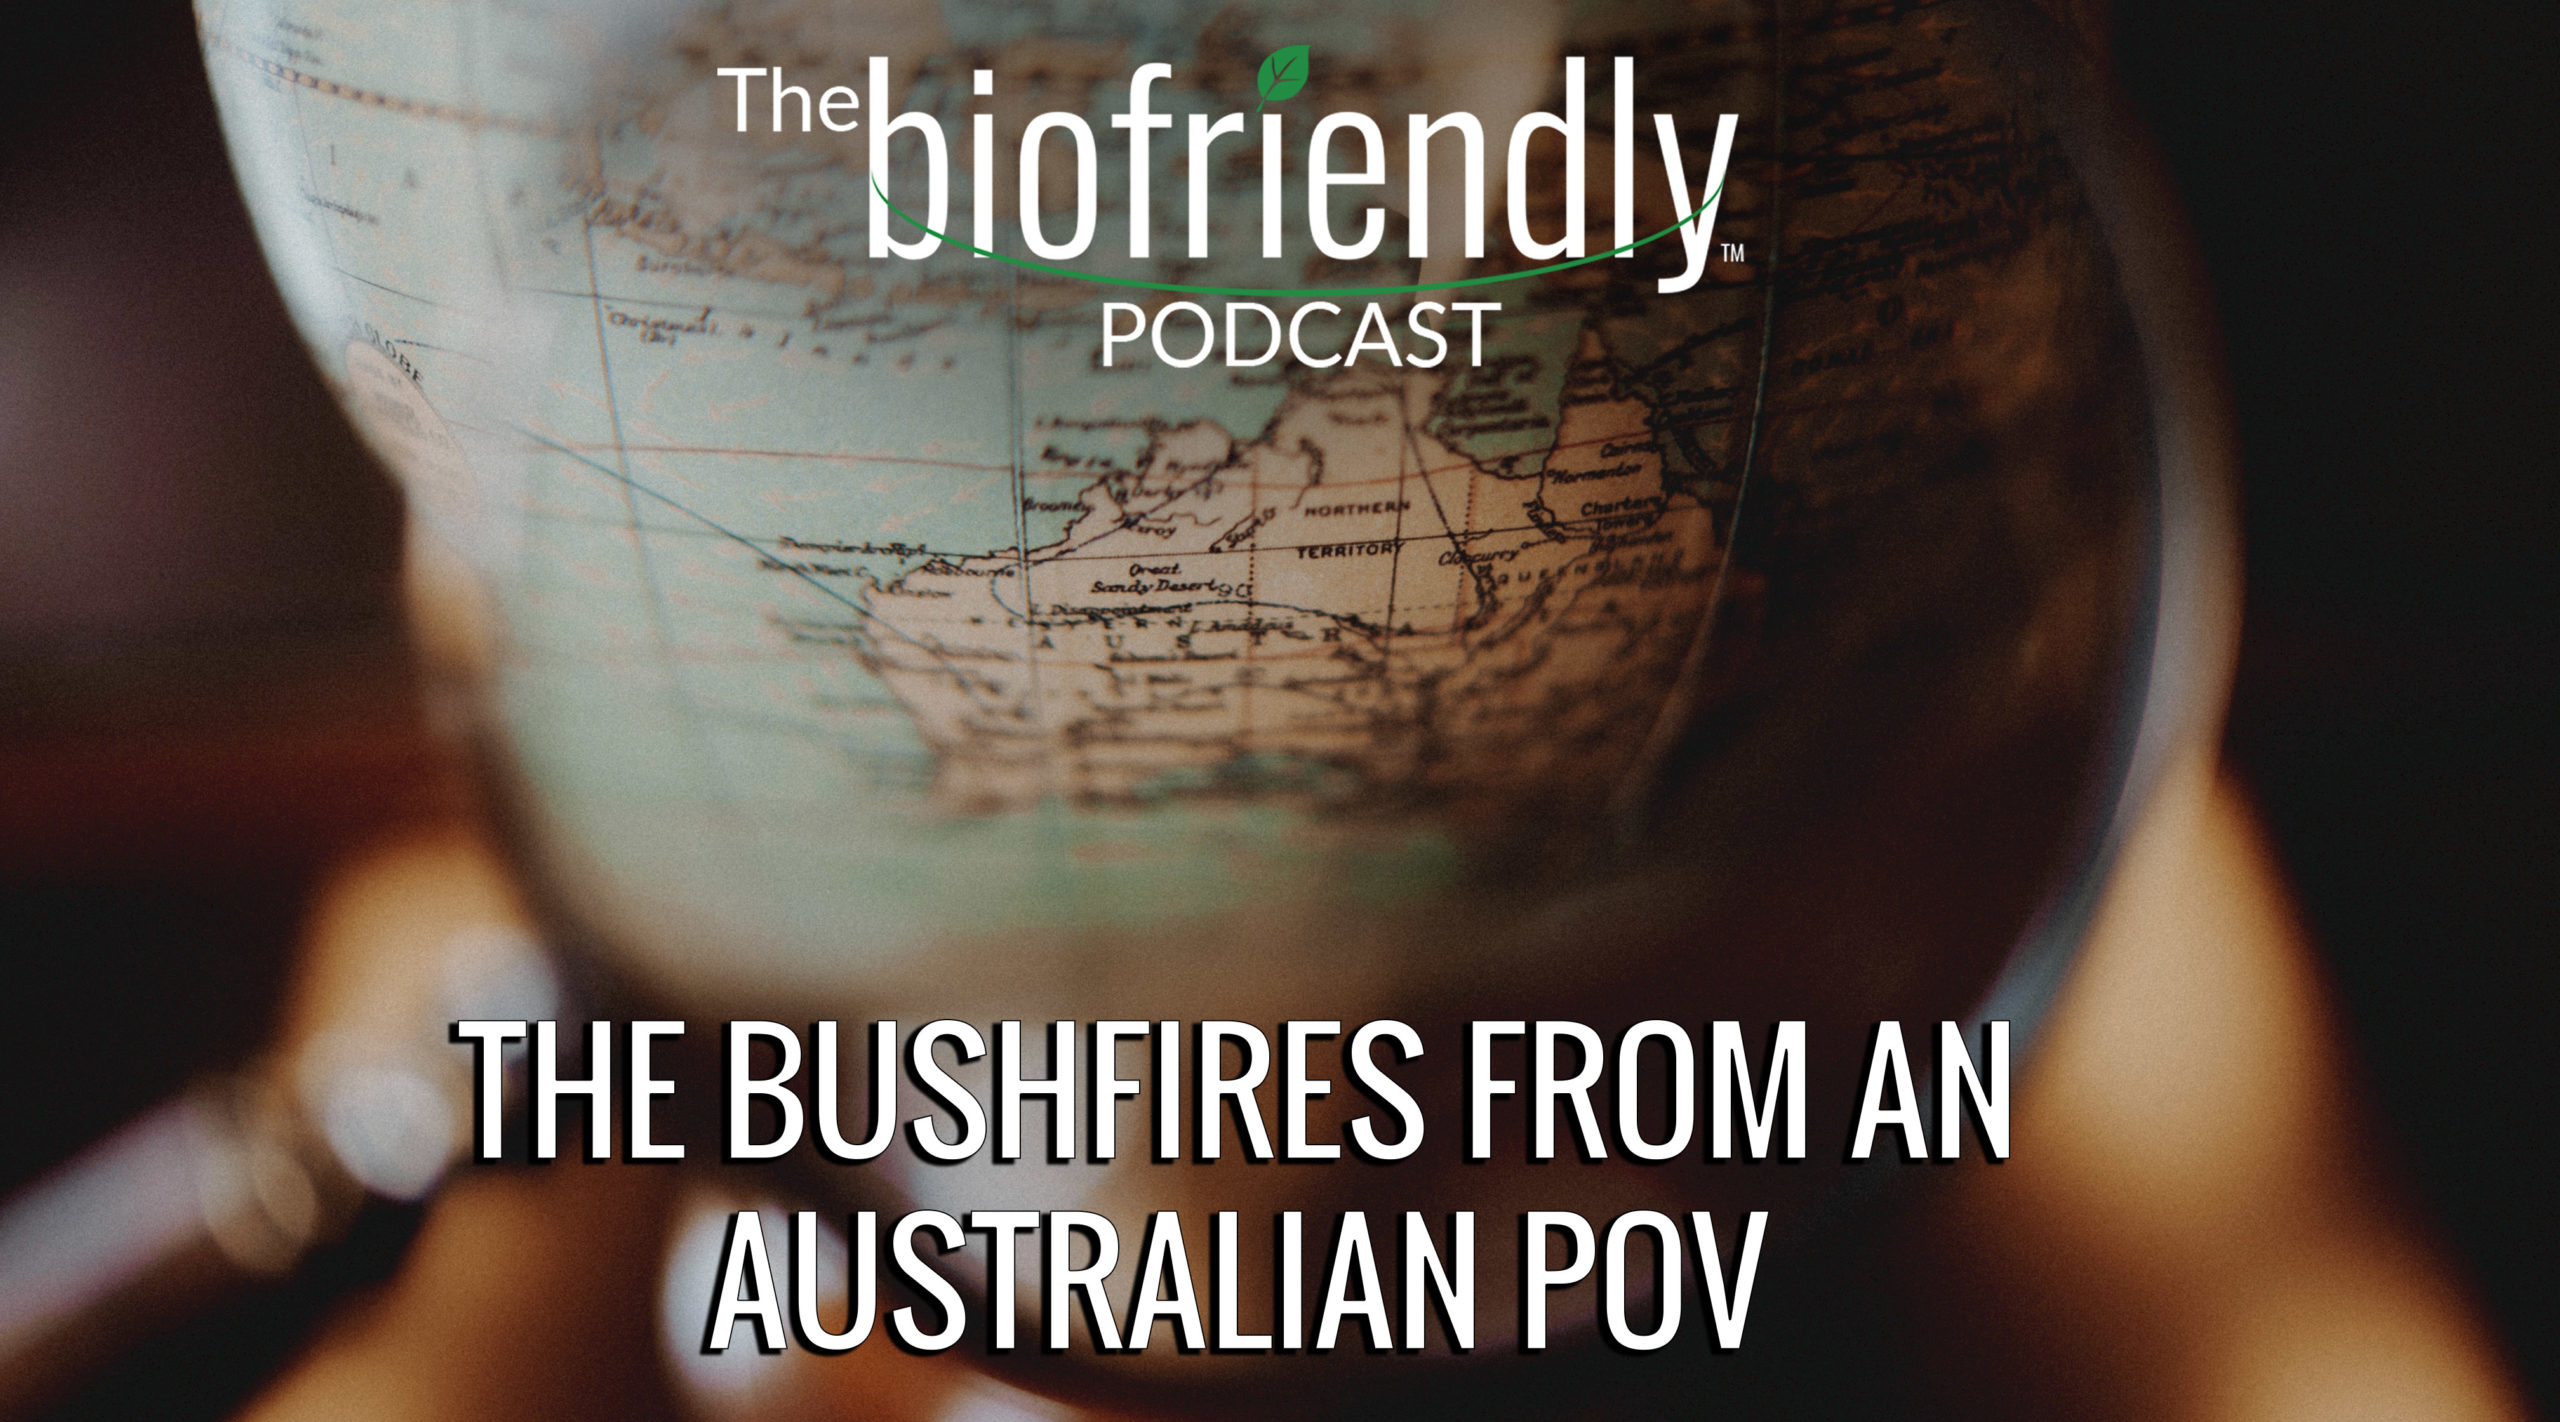 The Biofriendly Podcast - Episode 45 - The Bushfires from an Australian POV